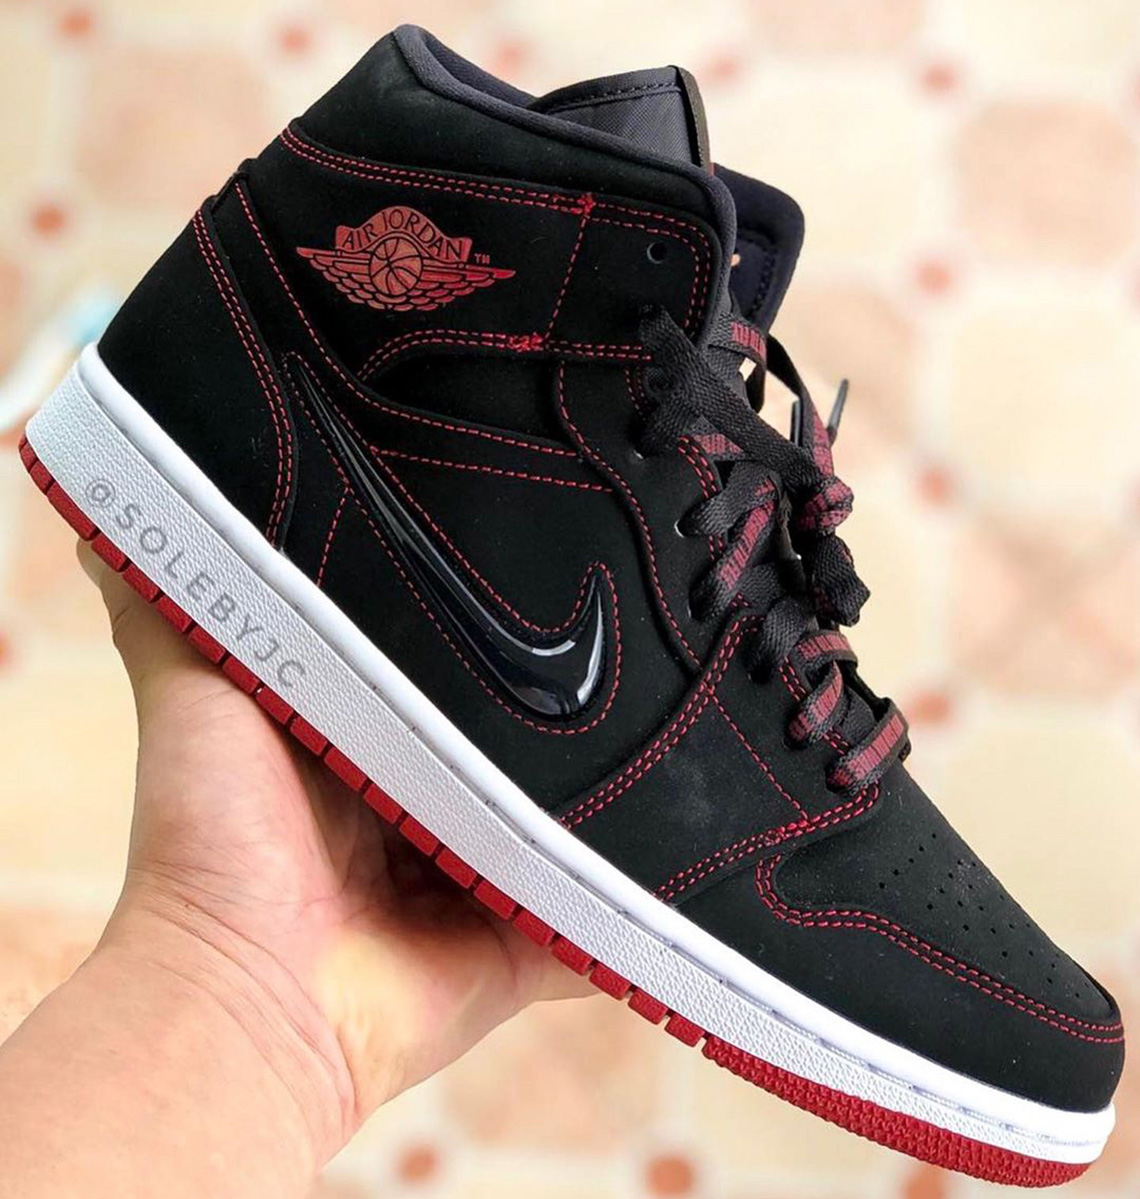 Jewel-Swooshed Jordan 1 Mid Celebrate 10th Anniversary of Mike's Hall of Fame Induction